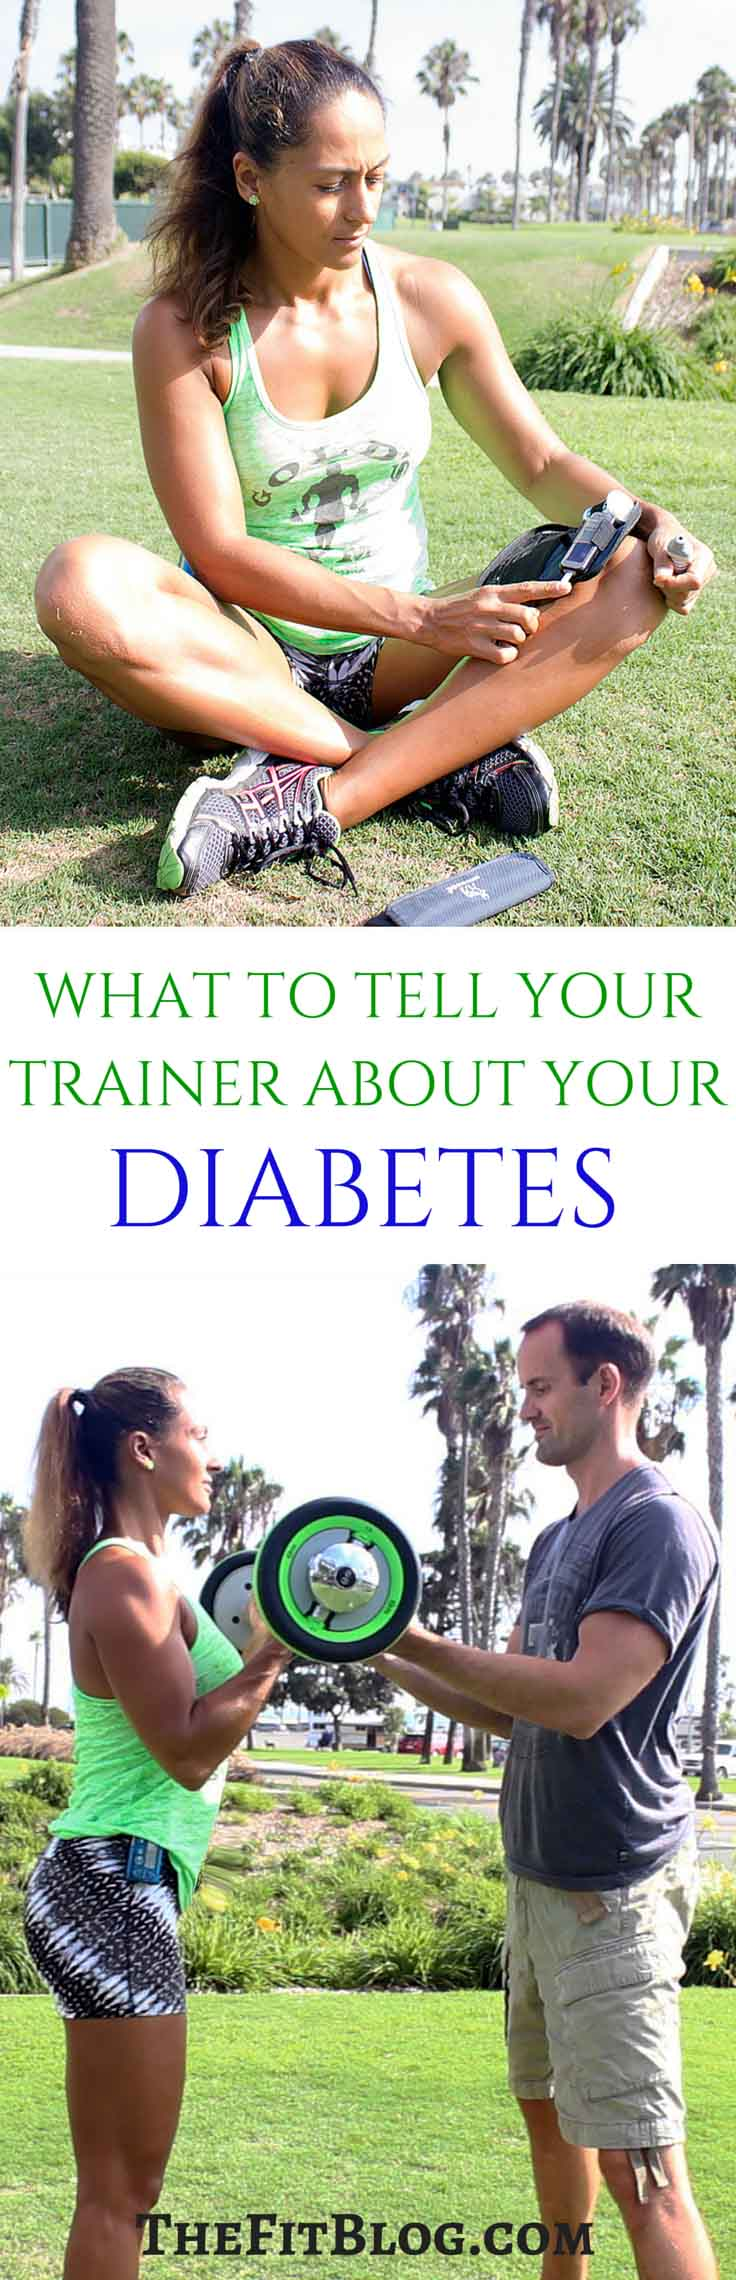 What To Tell Your Personal Trainer About Your Diabetes – A list of the most important things to tell your trainer about your diabetes before you start working out with him or her.